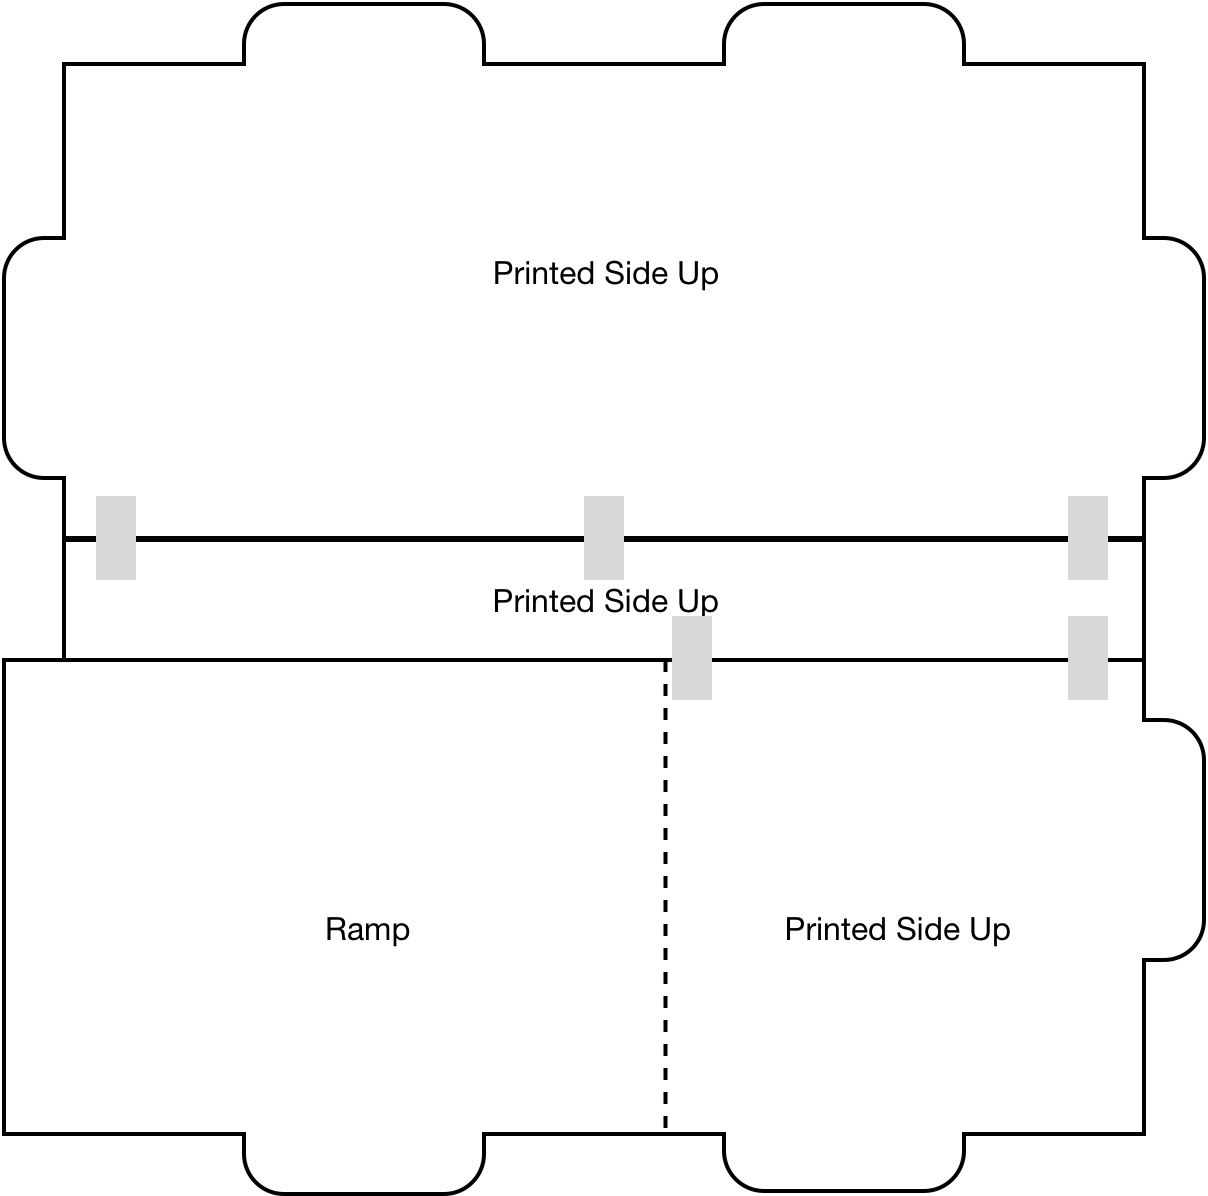 Picture of Floor (E) – Tape Floor Pieces in Place